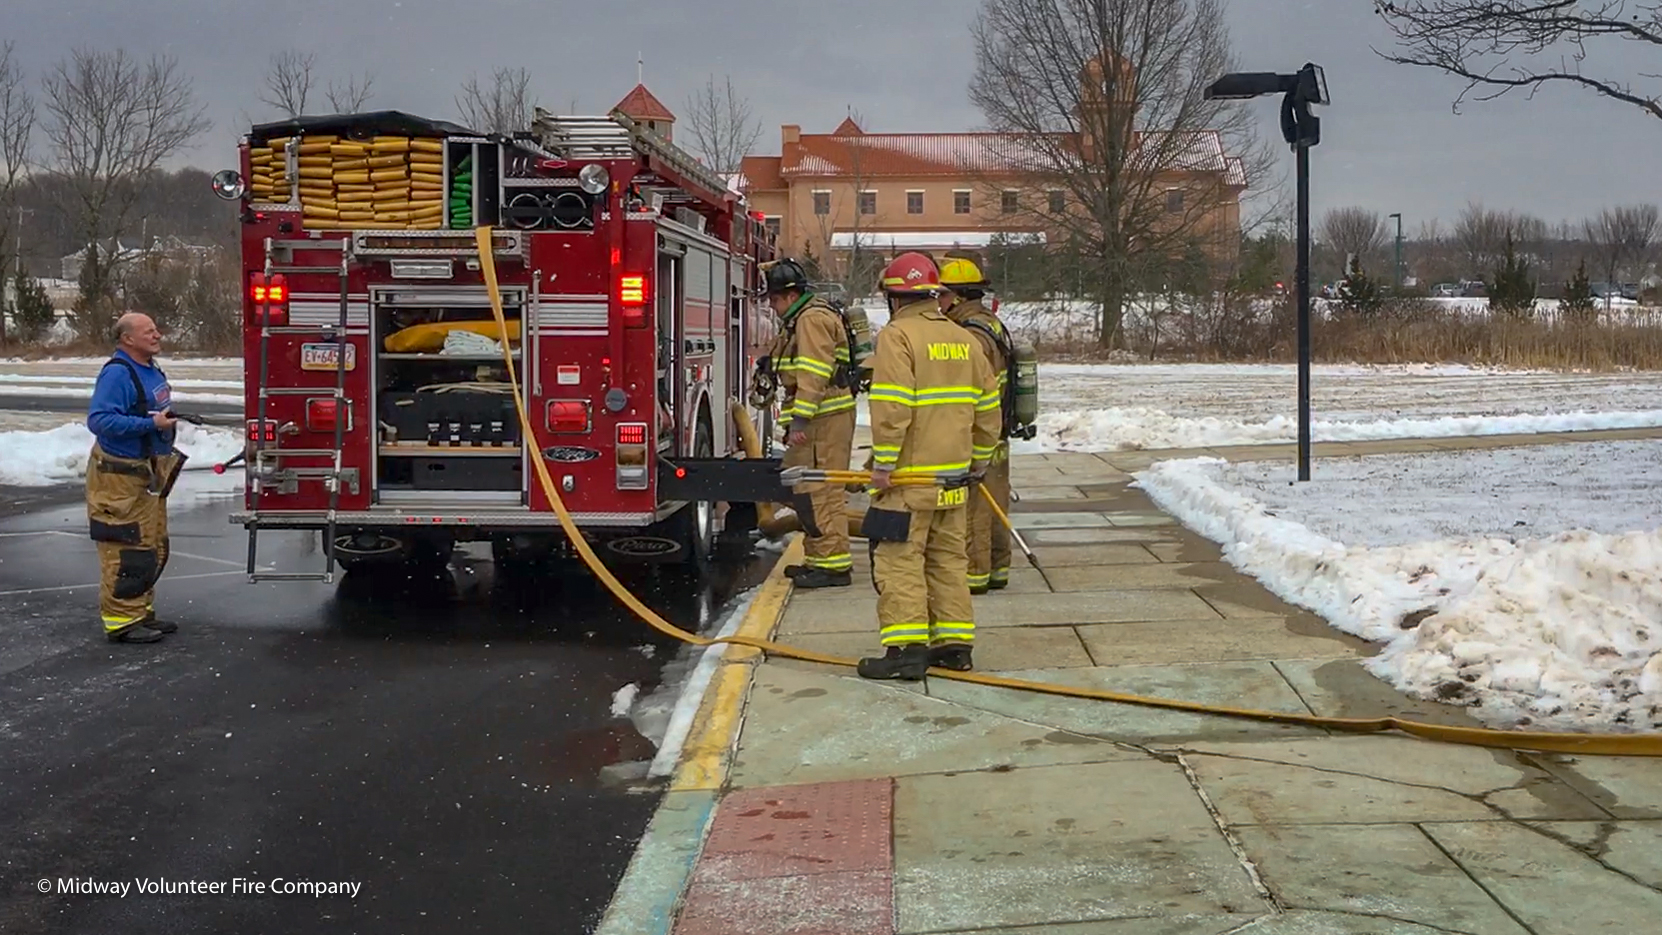 2019-02-13 - Midway Volunteer Fire Company, with the support of neighboring fire companies (New Hope, Lingohocken, Plumstead, Doylestown, Point Pleasant, and Warwick) responded to the report of a fire at Cold Spring Elementary. Chief 5 was on scene three minutes after the call went out and escalated the response. In total there were 14 trucks (engines, ladders, rescue and EMS) on scene and another eight units covering empty fire stations. The fire was quickly contained and placed under control within 18 minutes. There were no reports of injury to the students and teachers or the first responders.